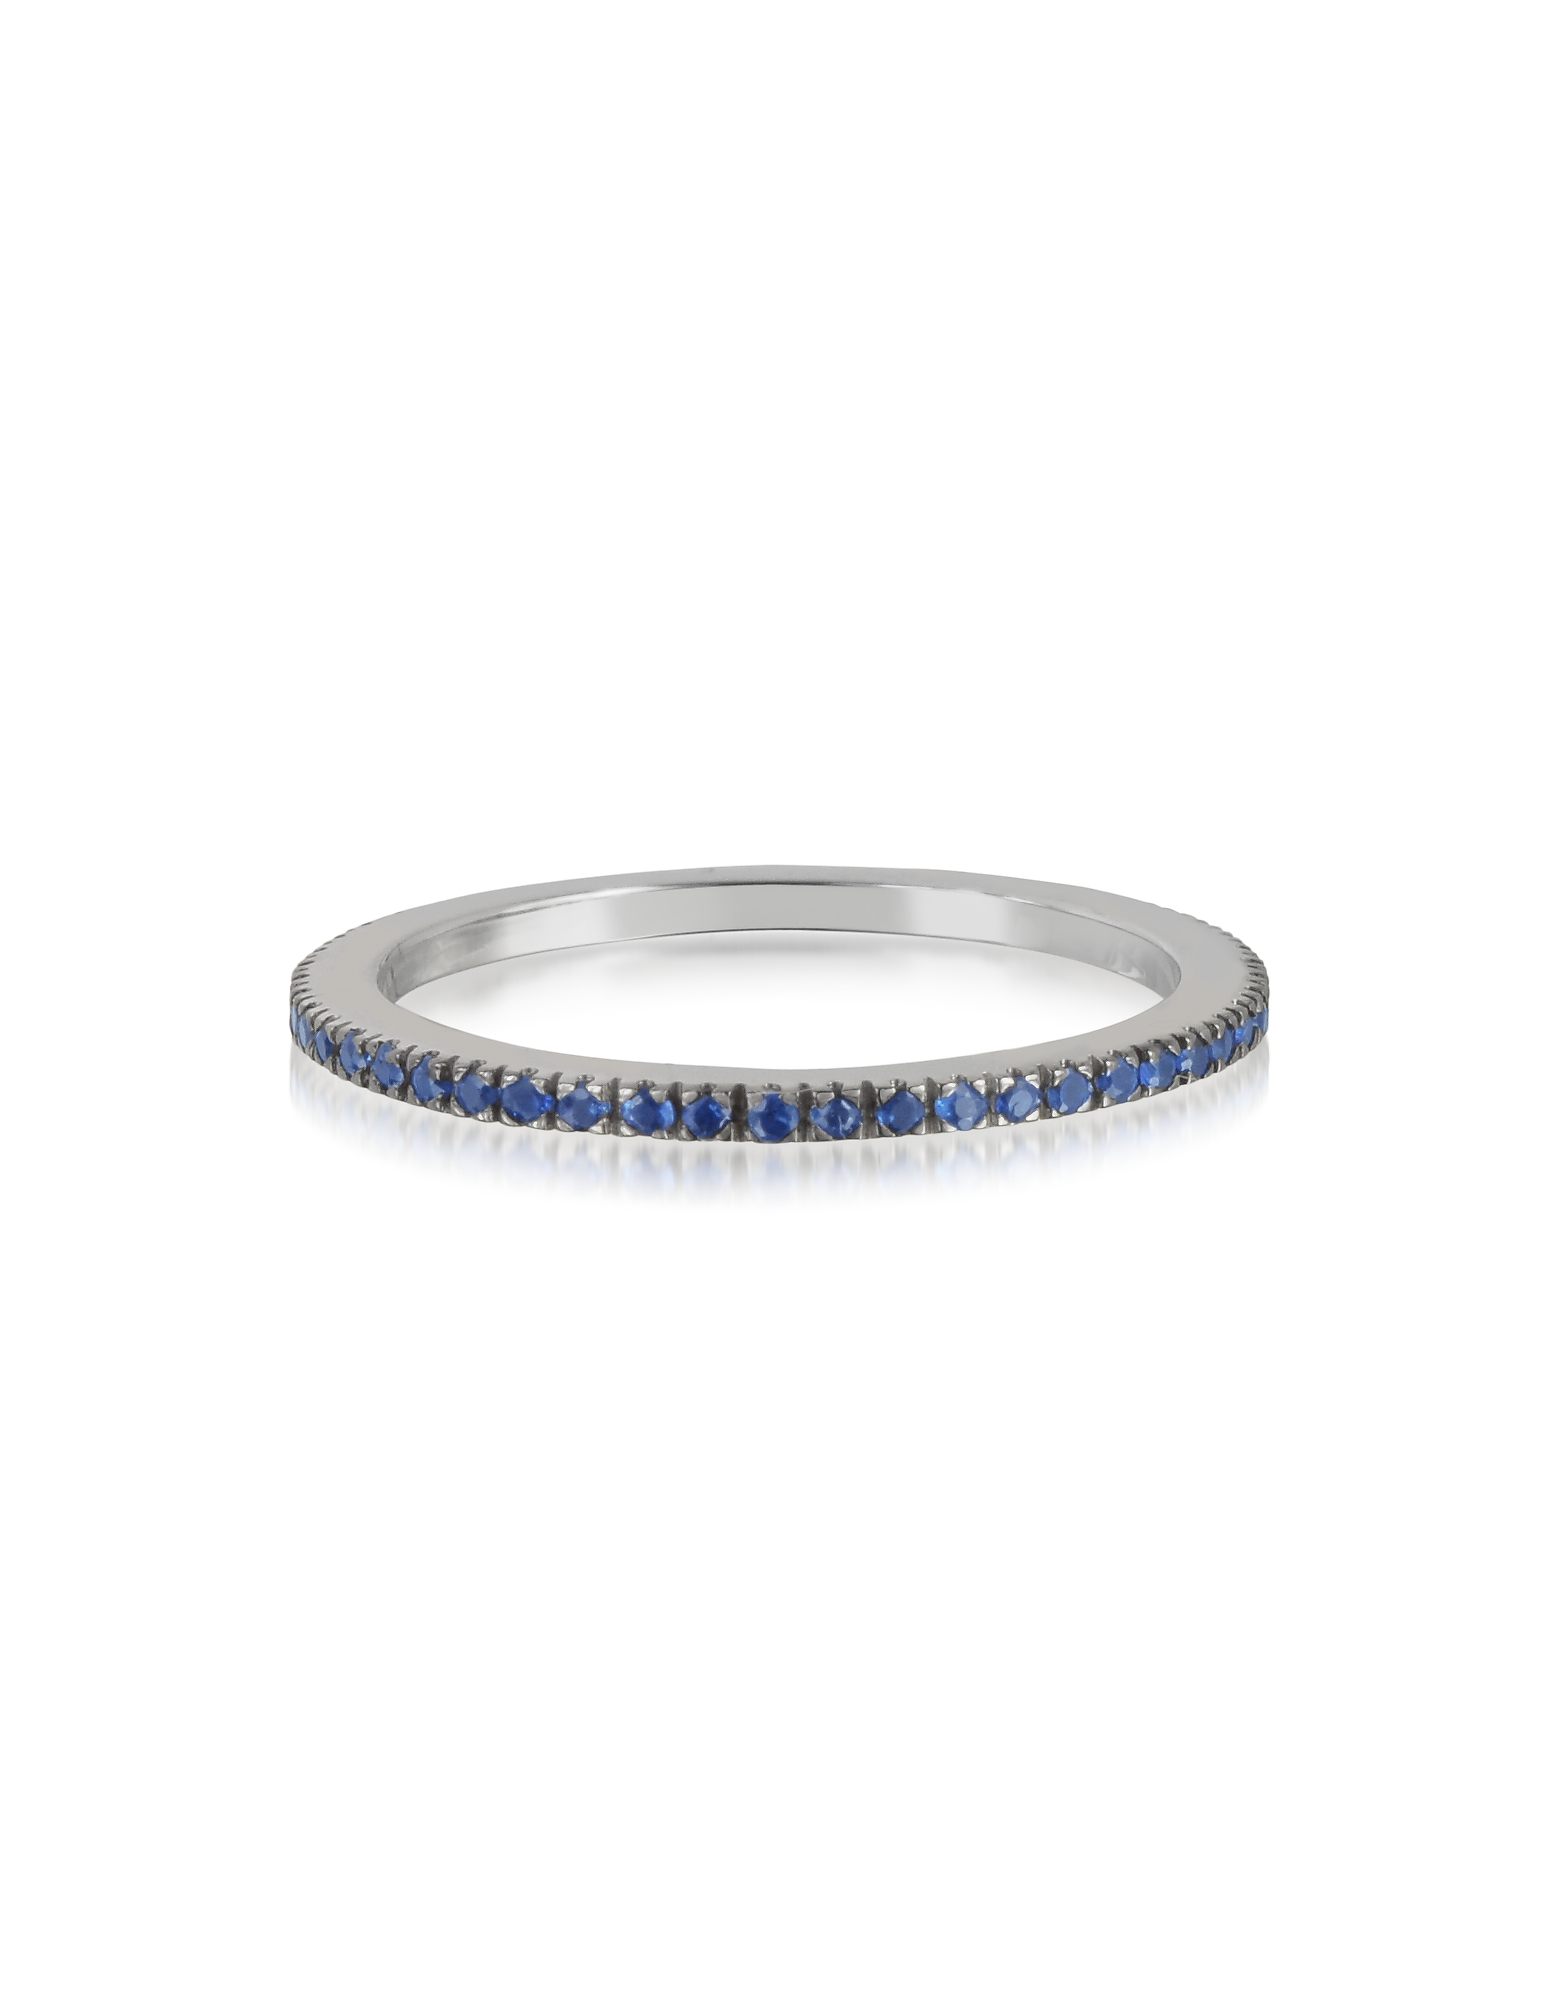 Forzieri Rings, Natural Blue Sapphire Eternity Band Ring